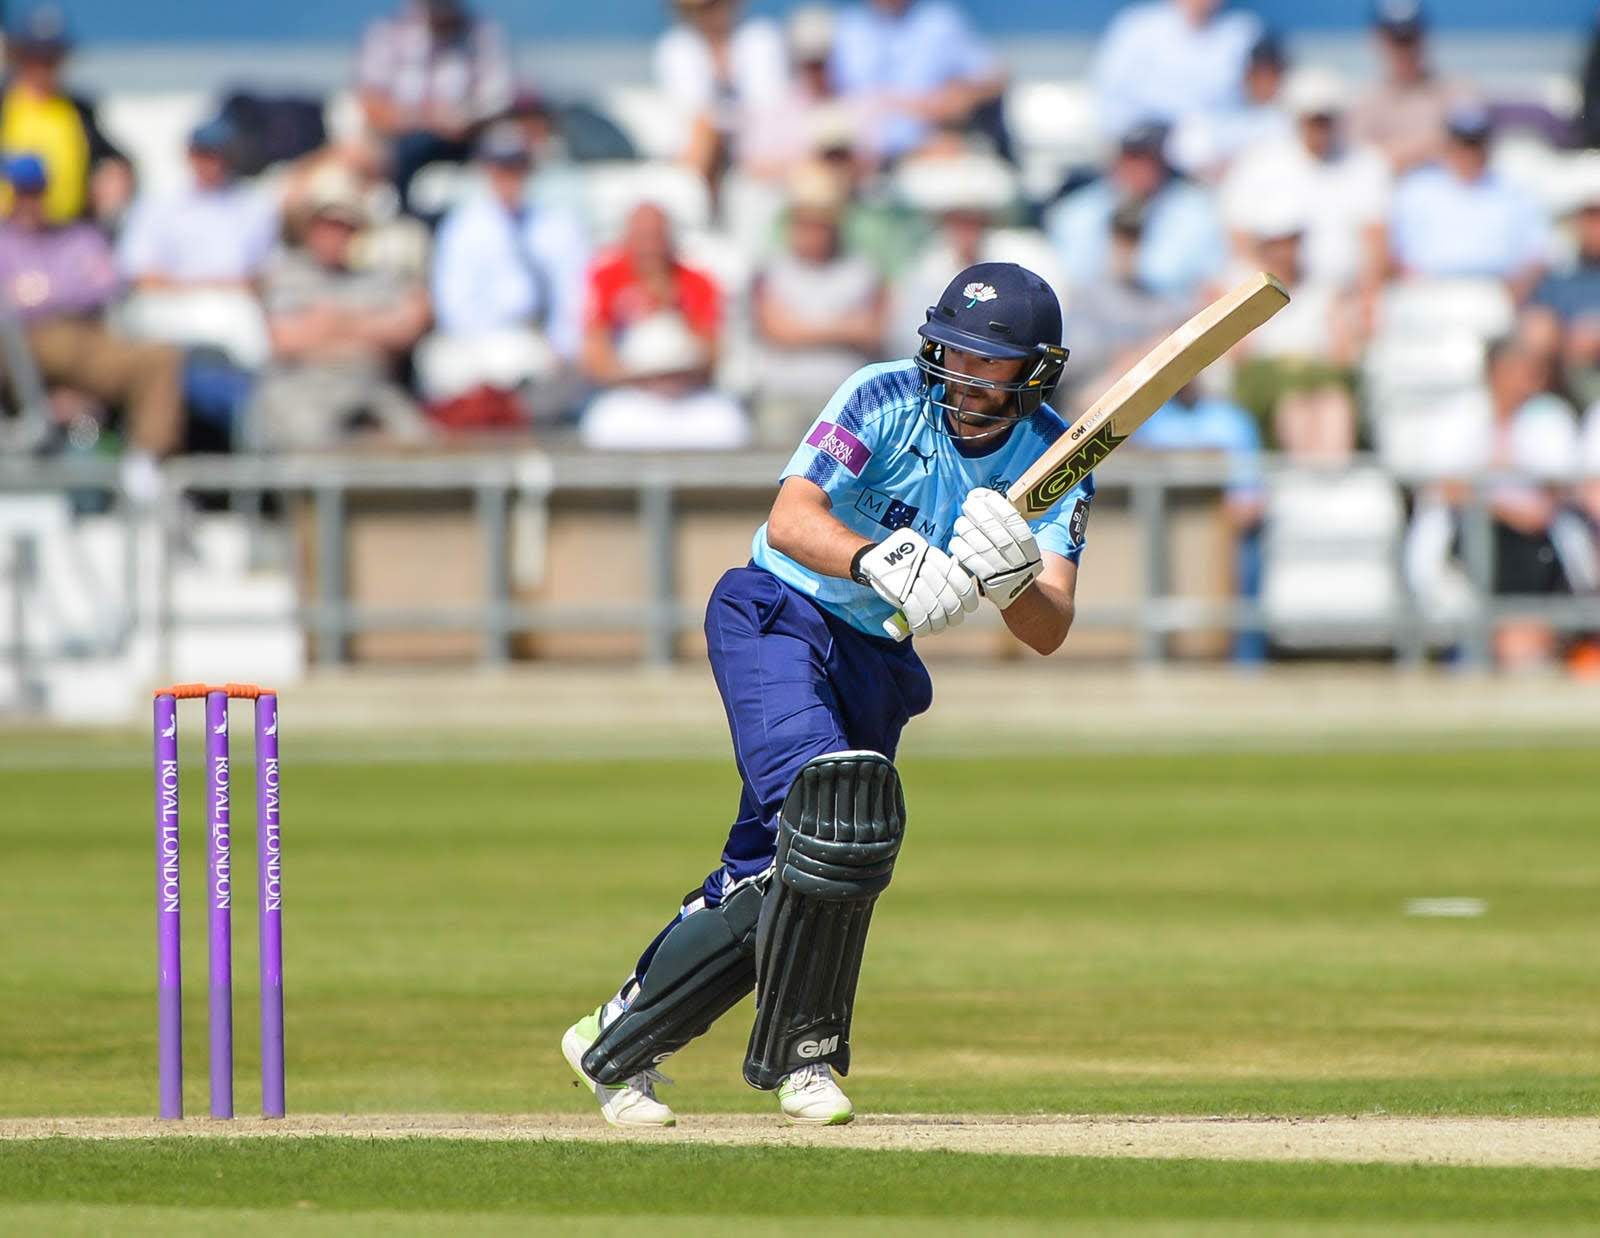 Adam Lyth hit 92 not out for Yorkshire